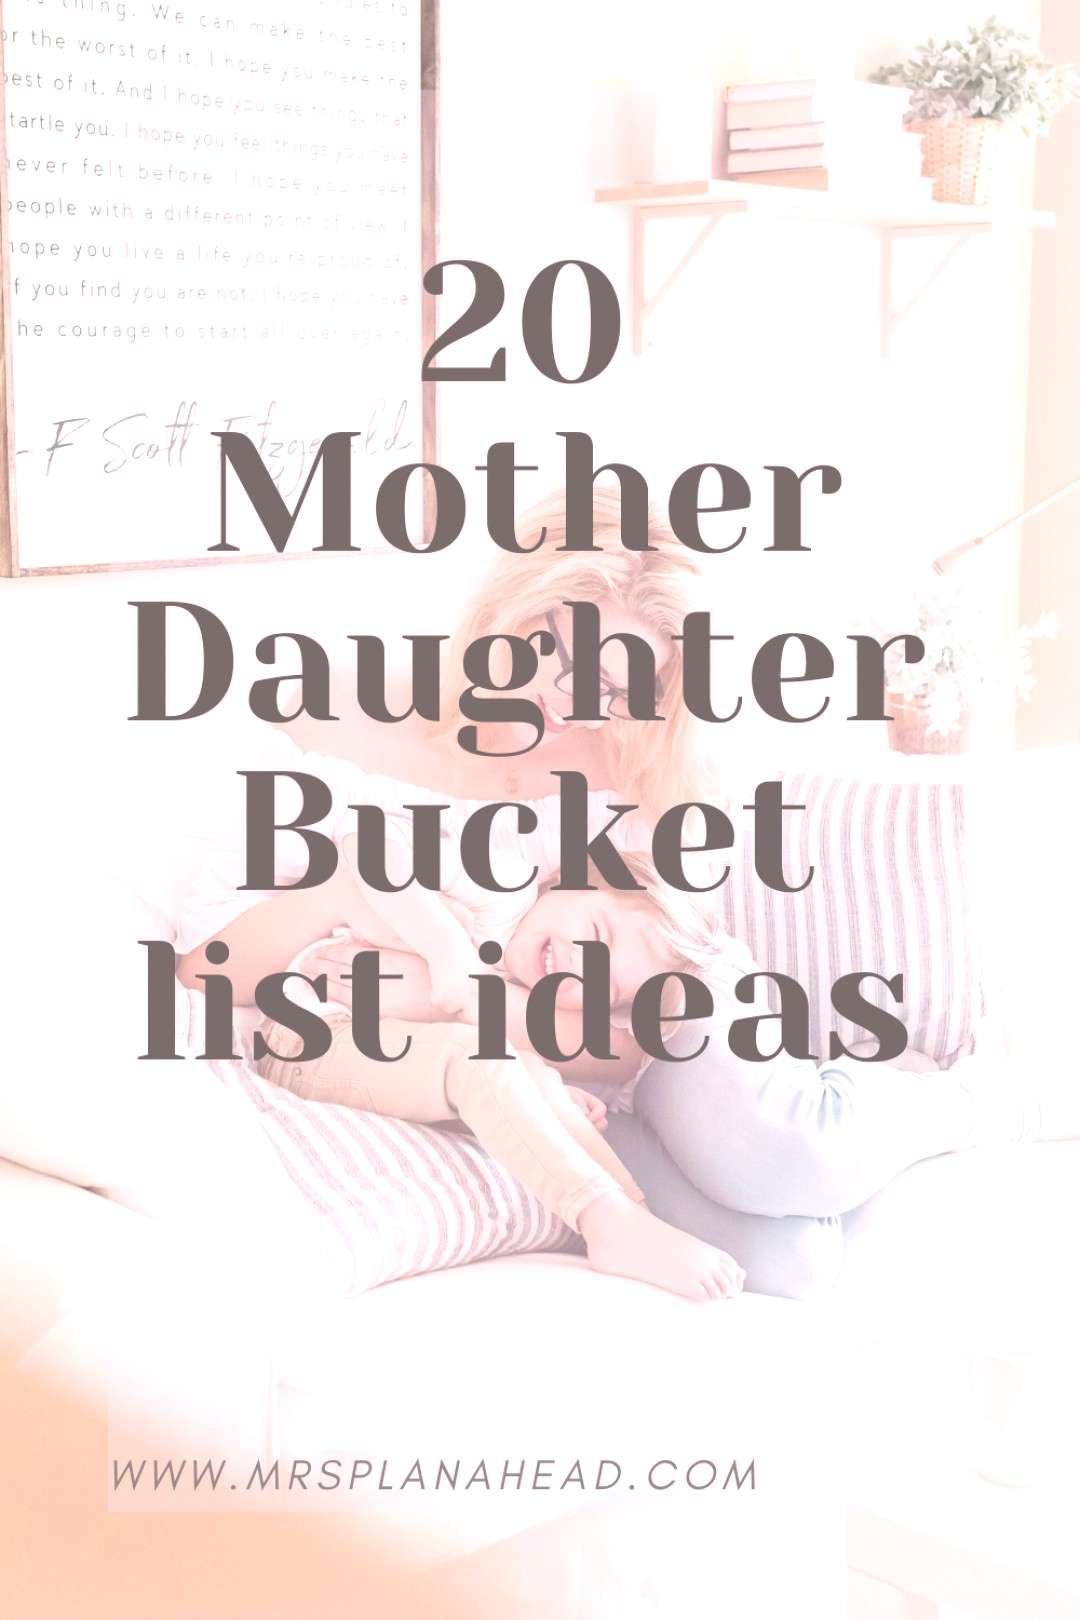 20 mother daughter bucket list ideas 20 mother daughter activities listed for moms wanting to spend